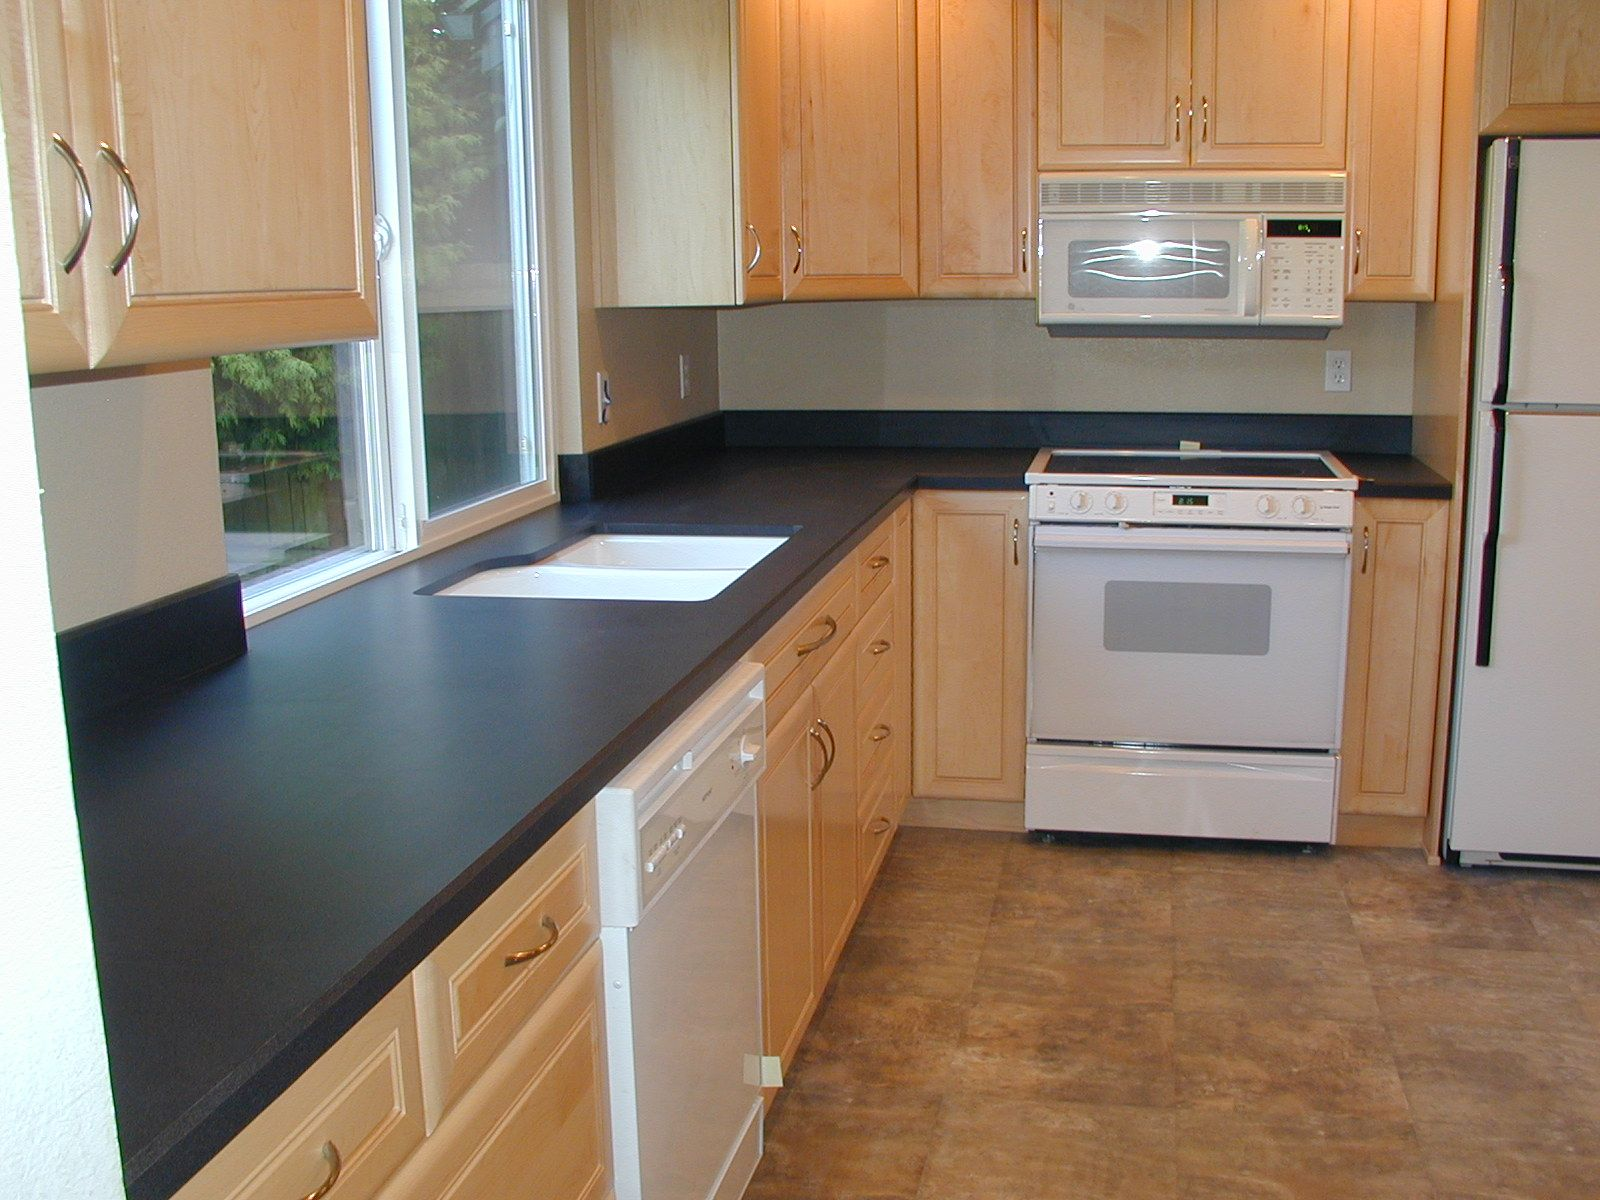 kitchen ideas with dark countertops | countertop design and ...